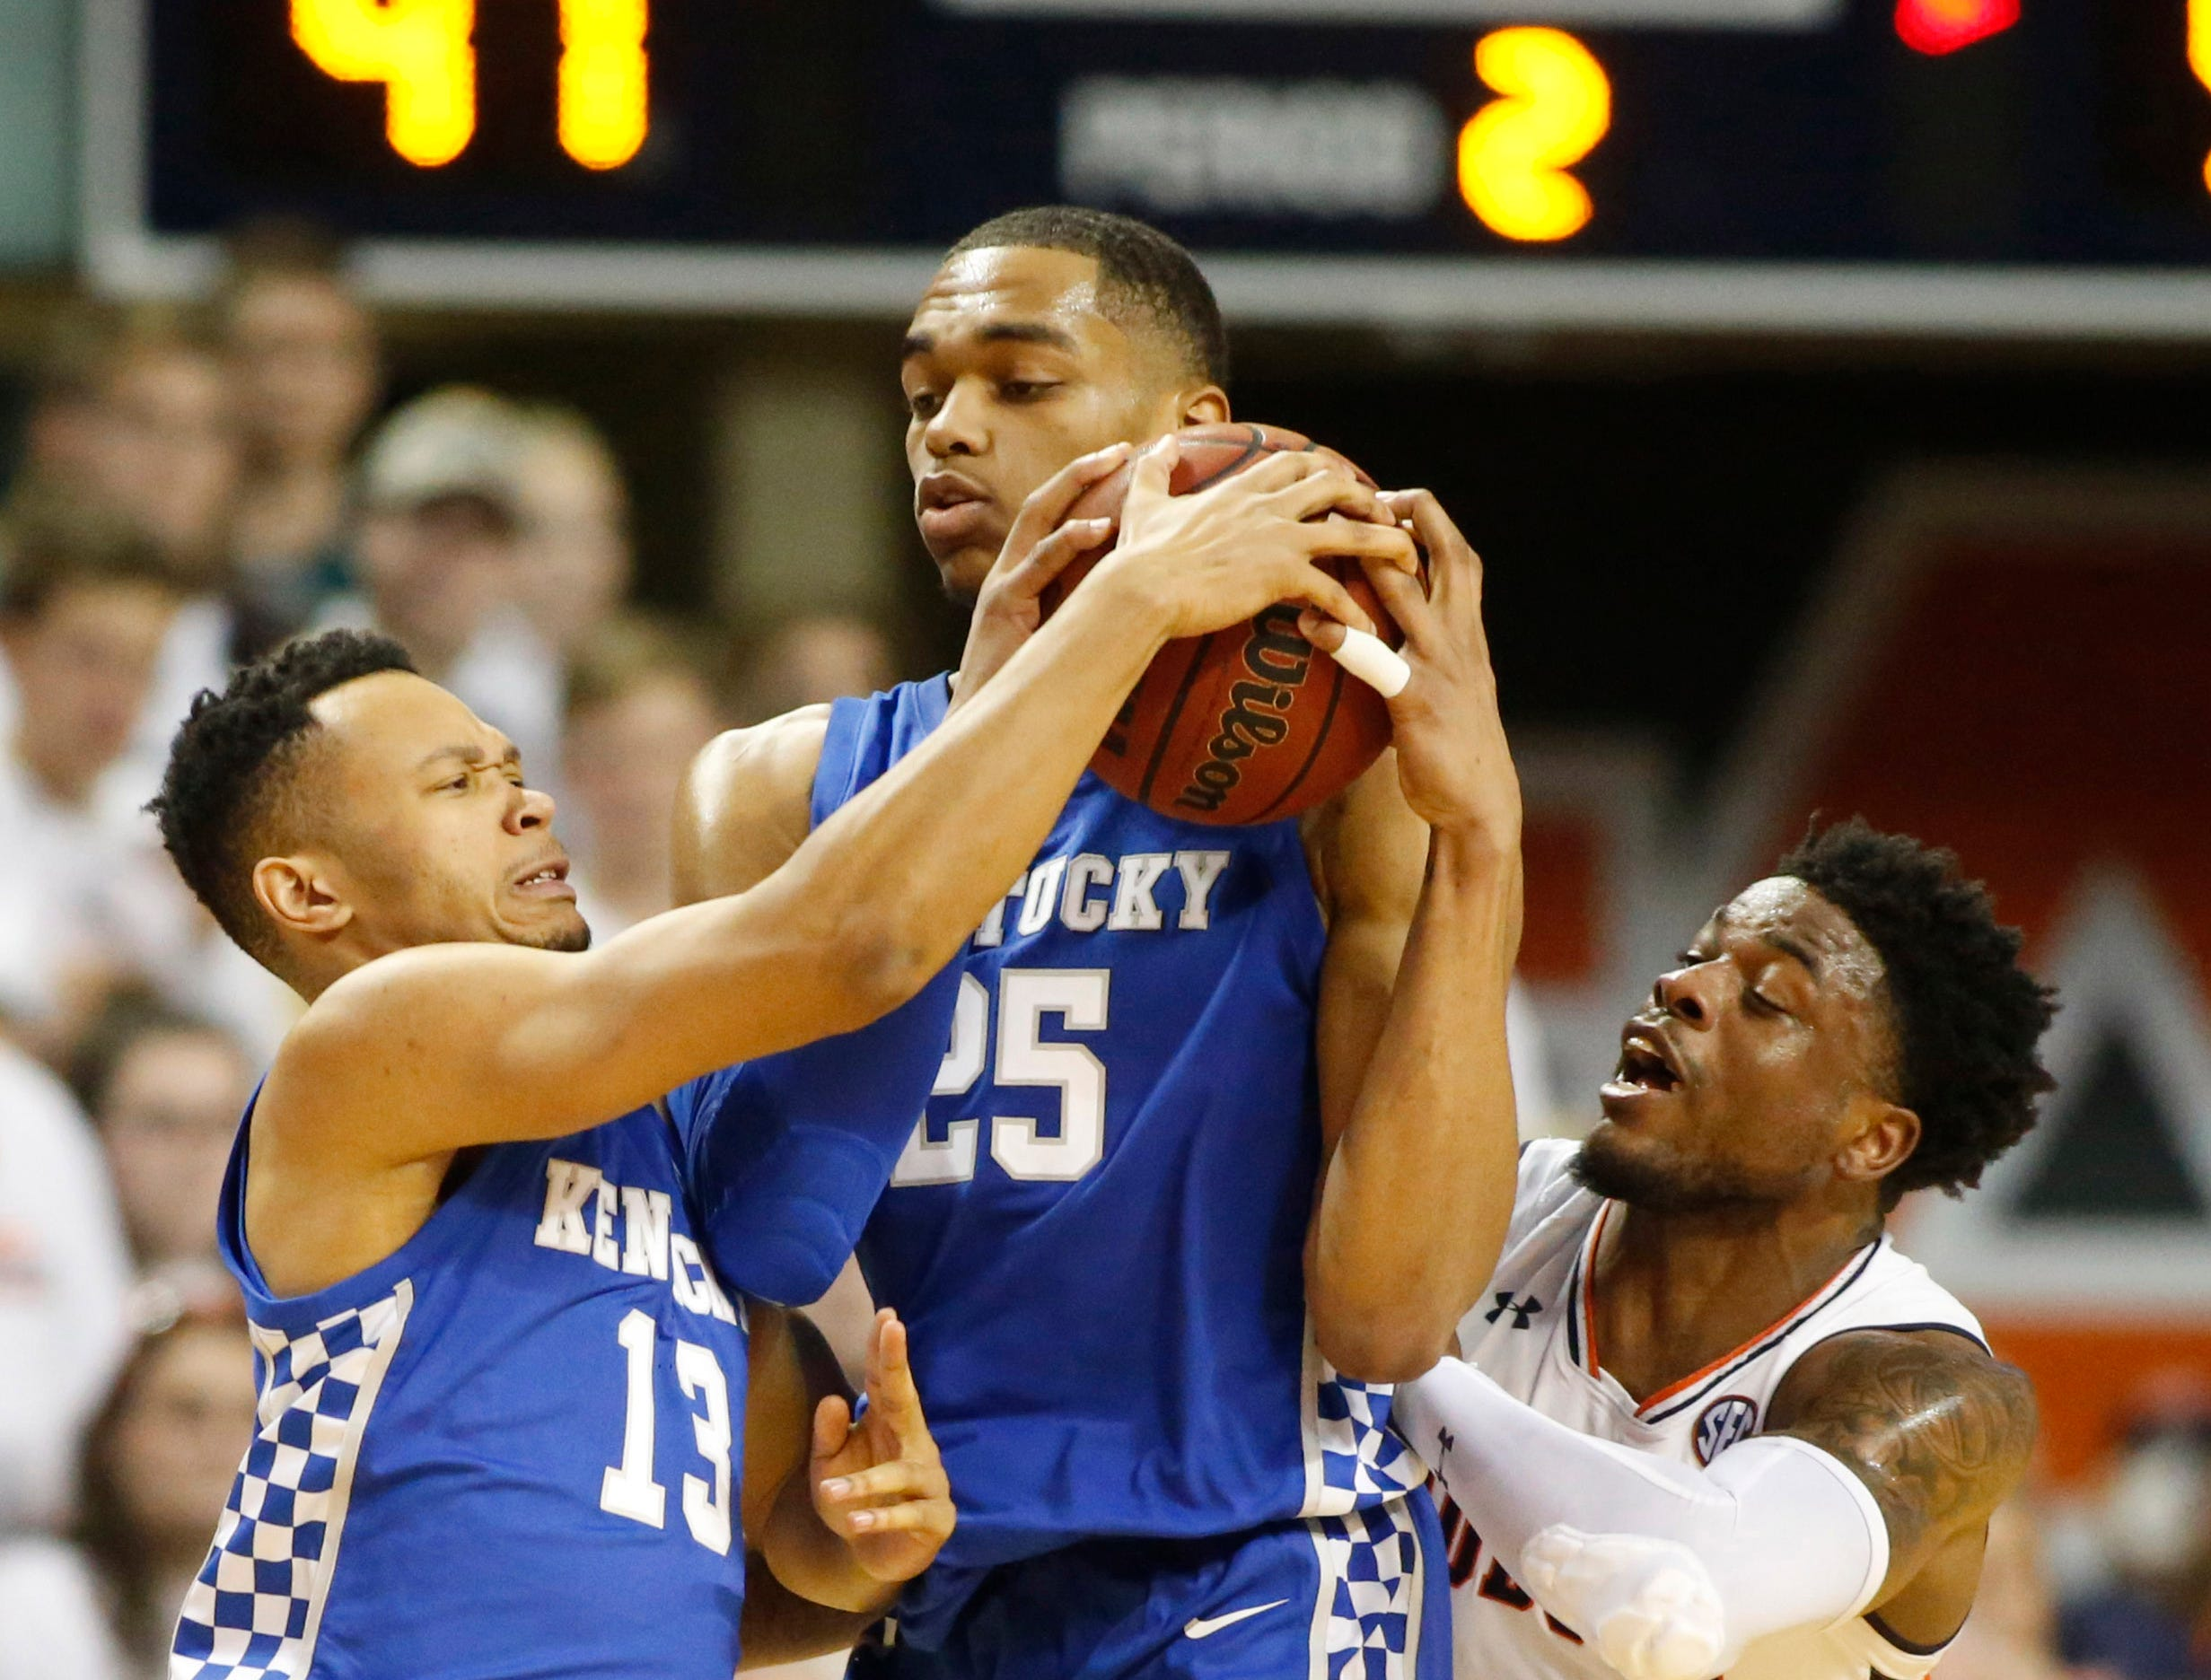 Jan 19, 2019; Auburn, AL, USA;  Kentucky Wildcats forward PJ Washington (25), guard Jermarl Baker (13) and Auburn Tigers guard Malik Dunbar (4) go for the ball during the second half at Auburn Arena. Mandatory Credit: John Reed-USA TODAY Sports